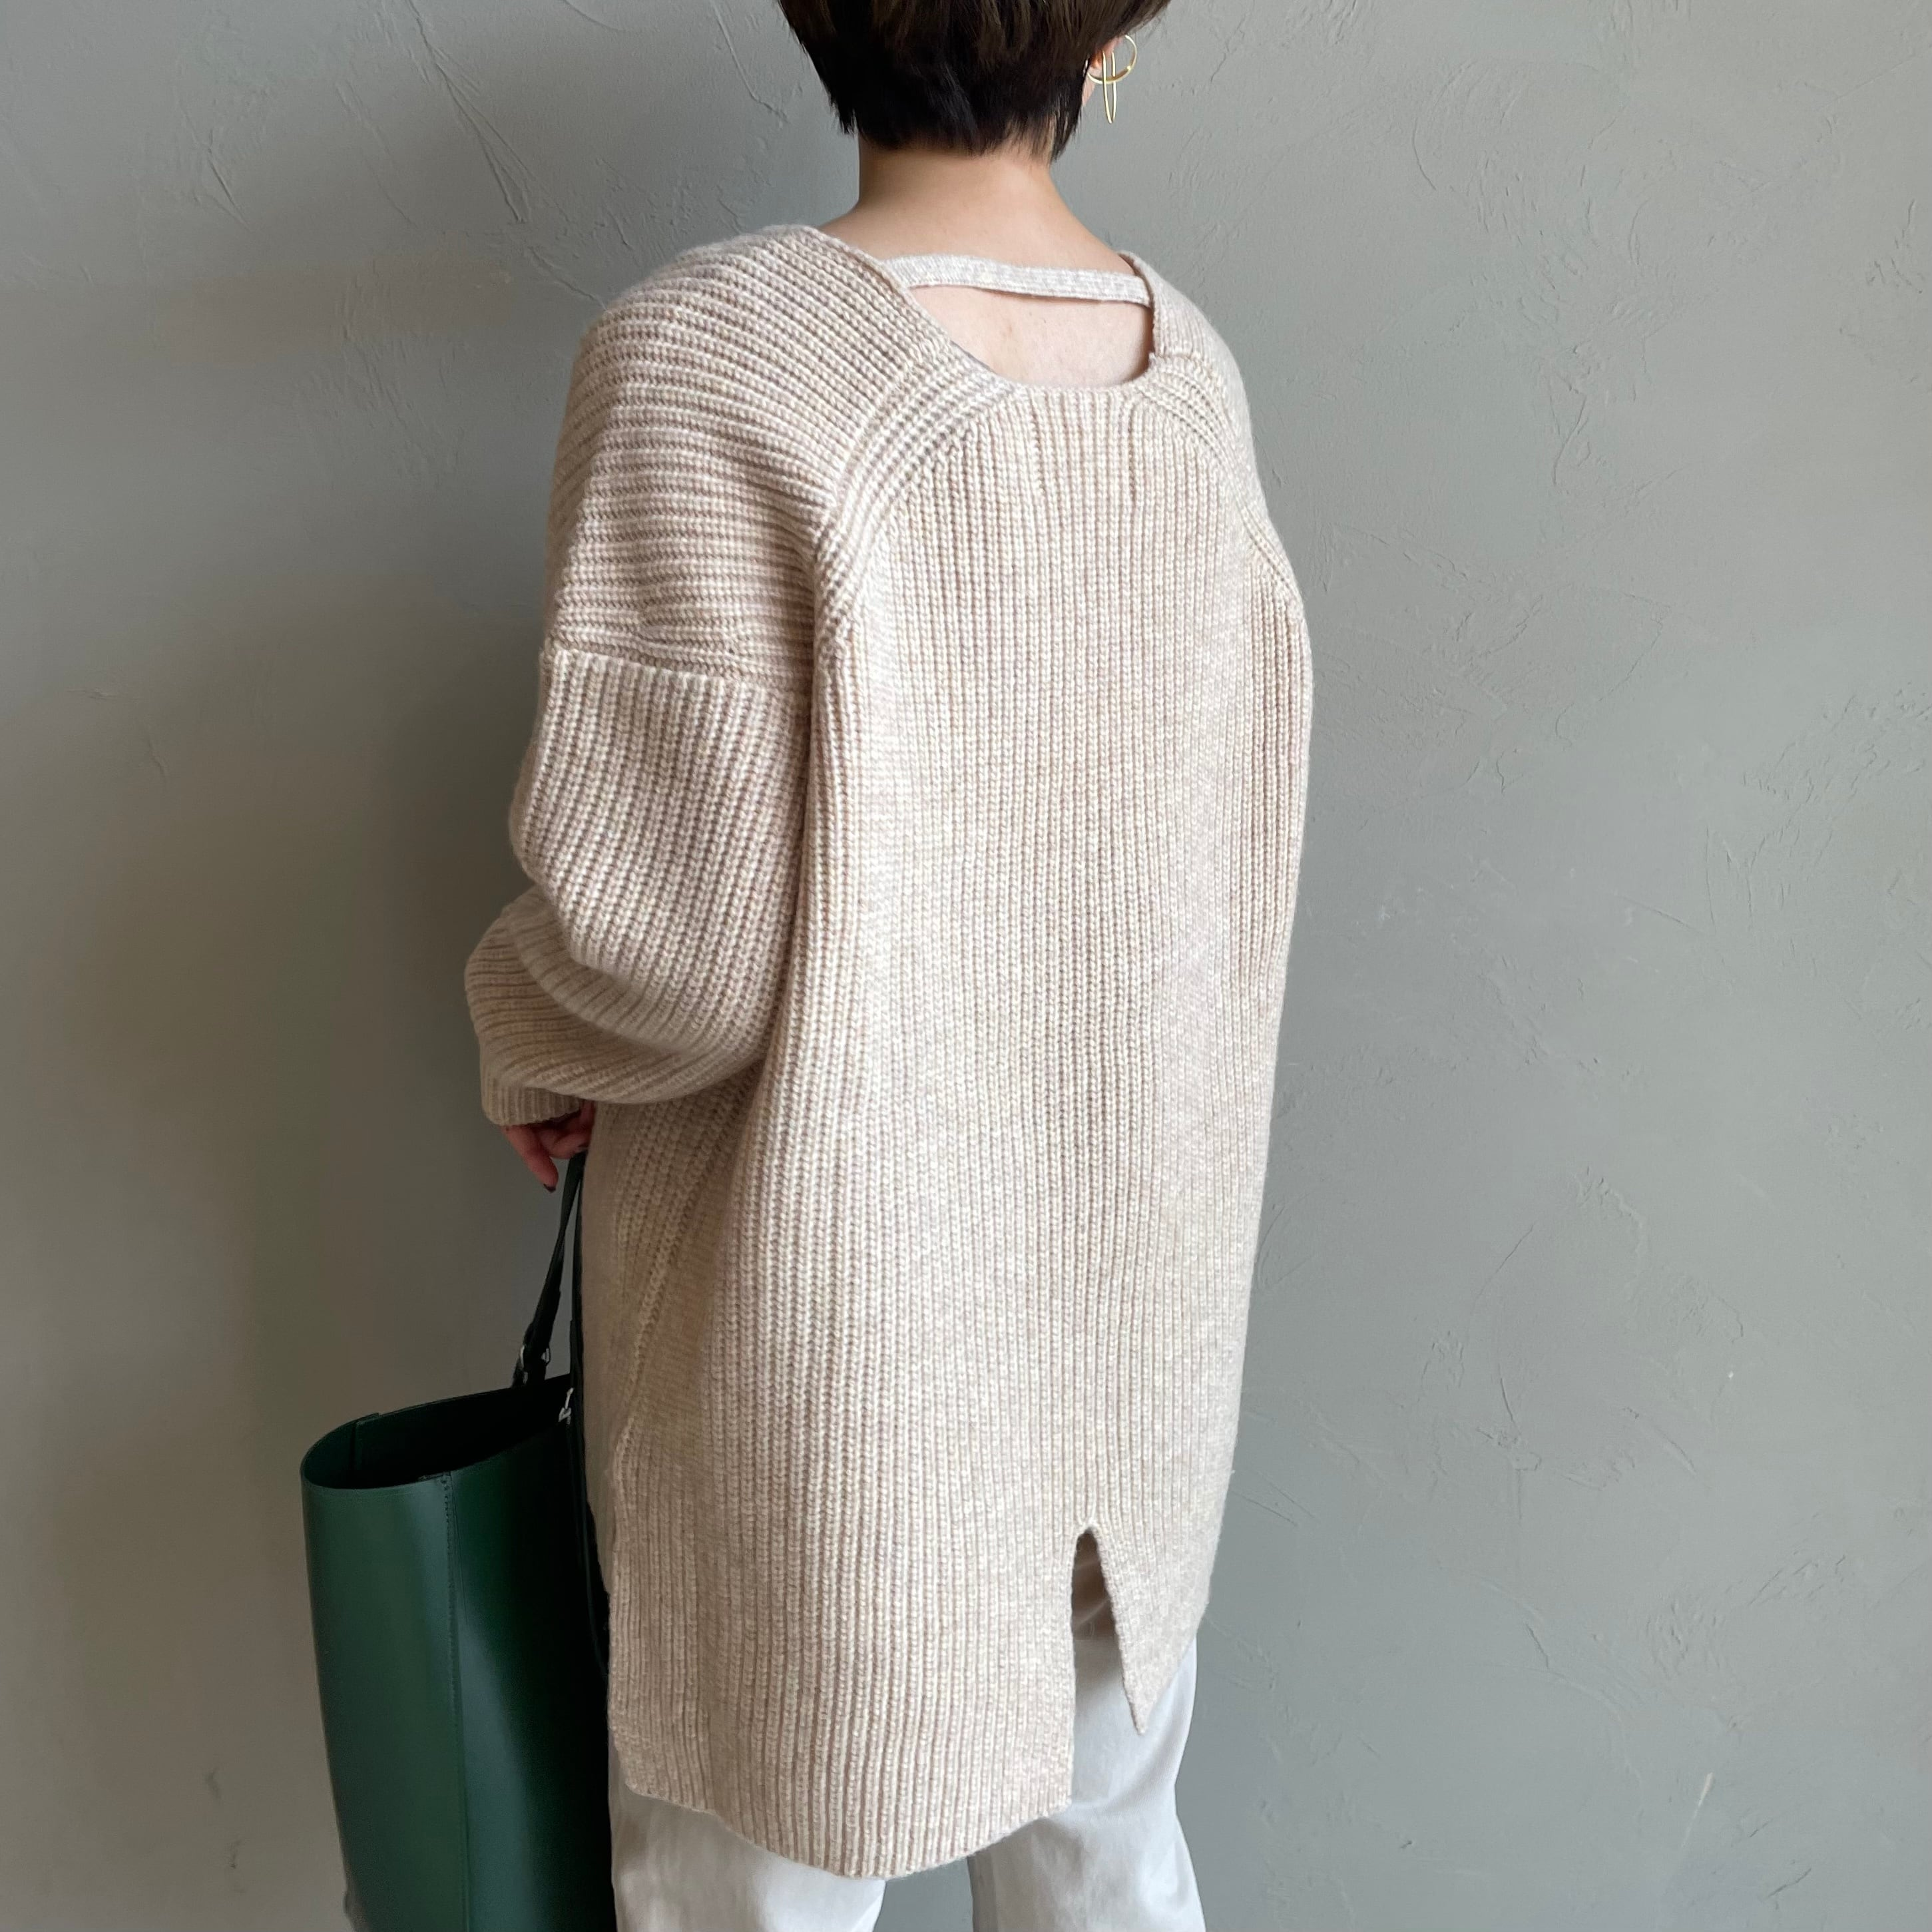 【 Lilly Lynque 】- 8003111 - Air yarn Vneck tops